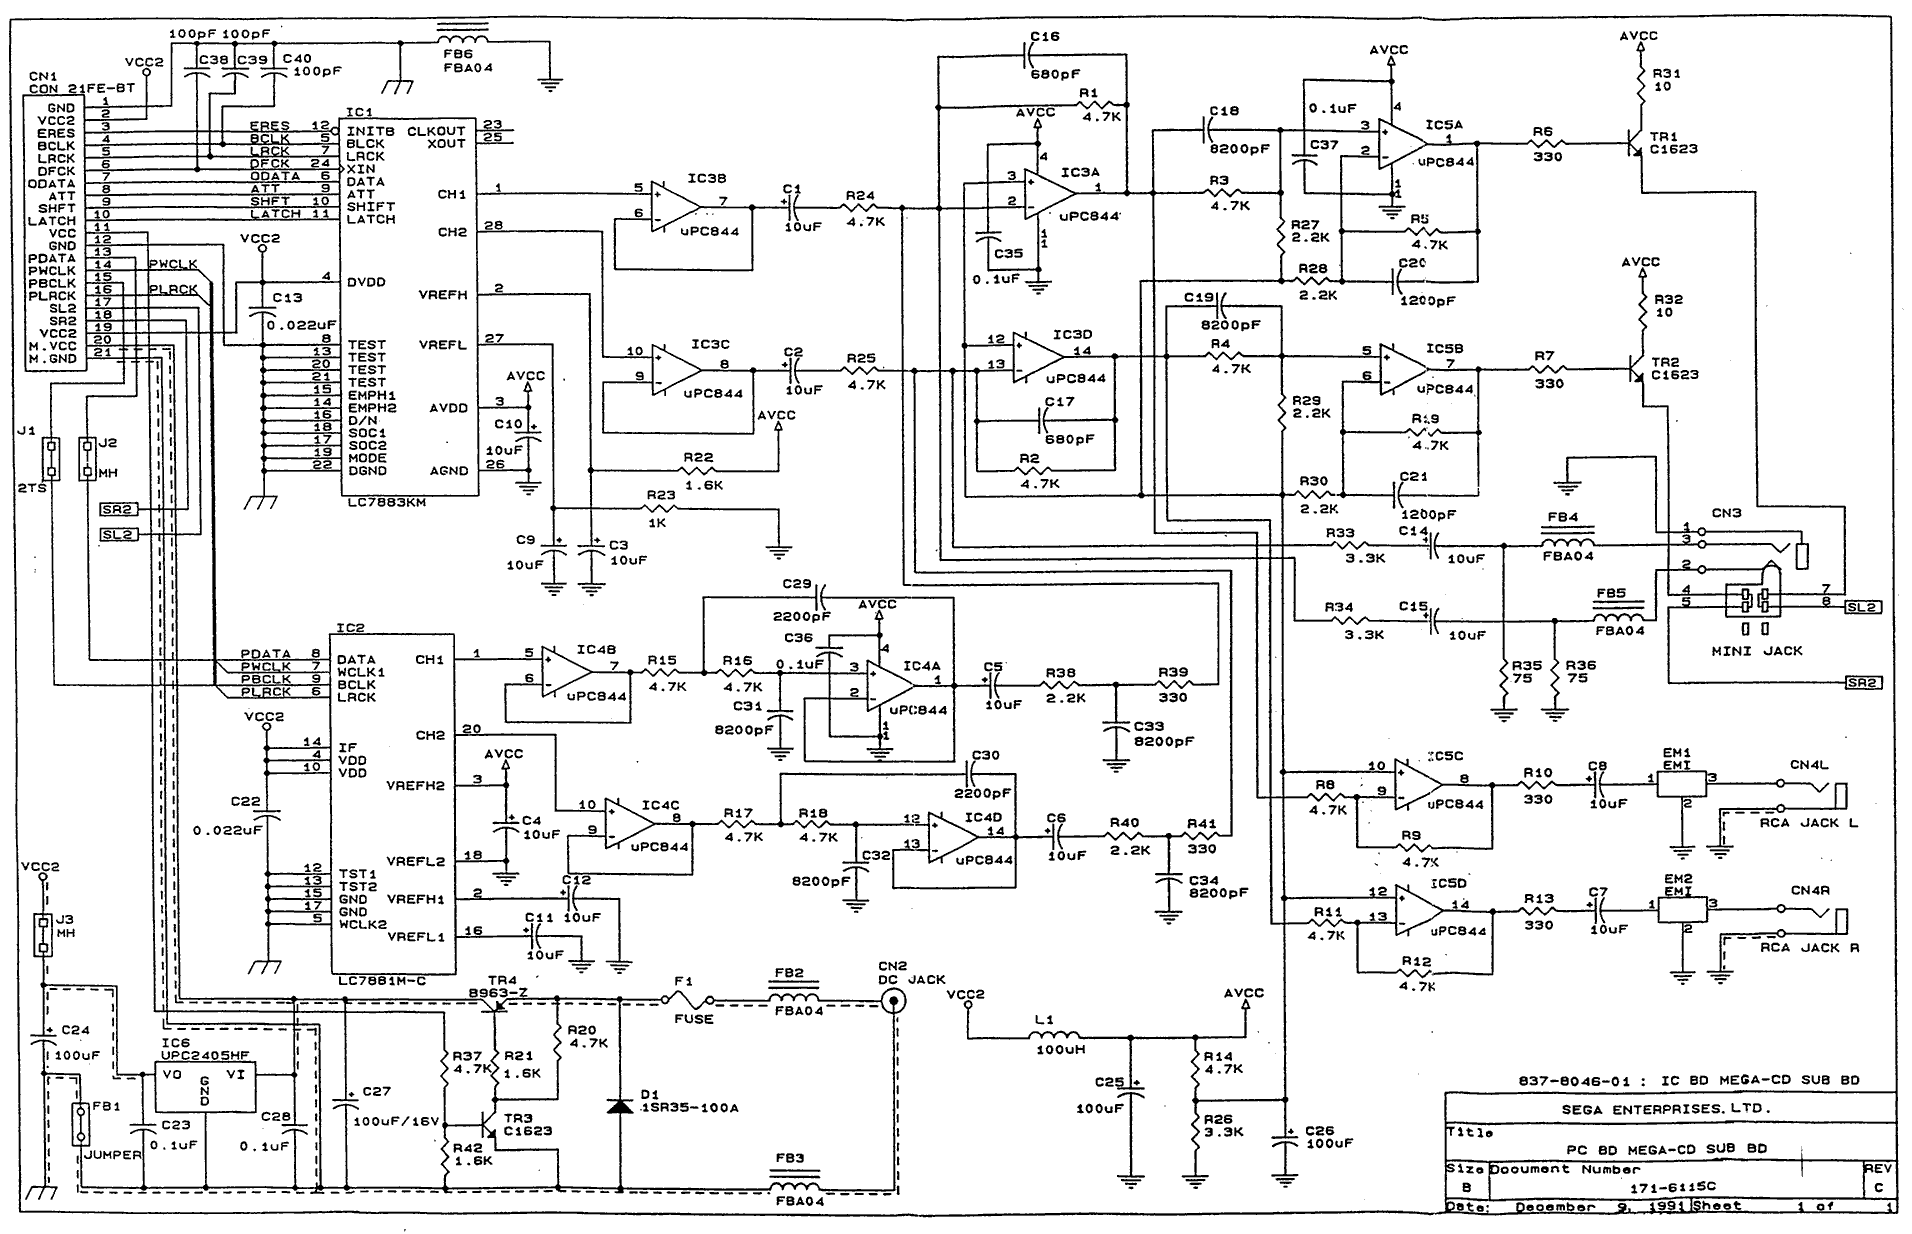 xbox one controller wiring diagram sega cd systems repair thread page 29  sega cd systems repair thread page 29